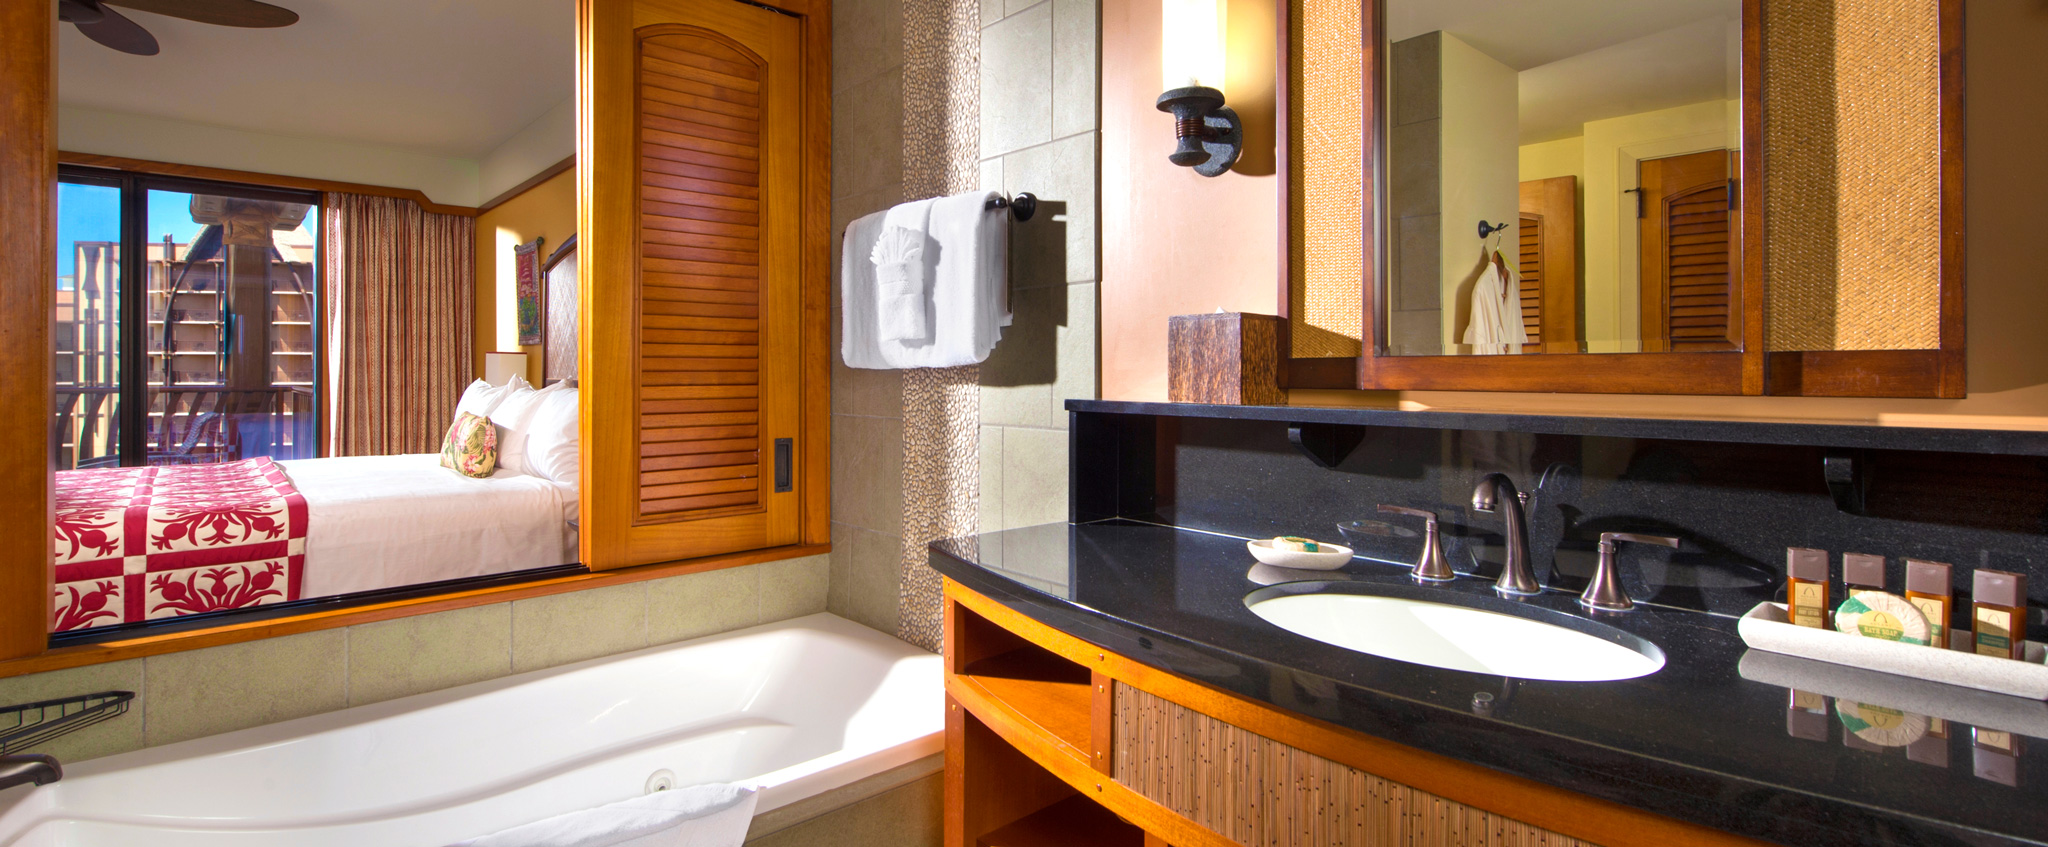 One bedroom villa aulani hawaii resort spa for 1 bathroom 2 bedroom